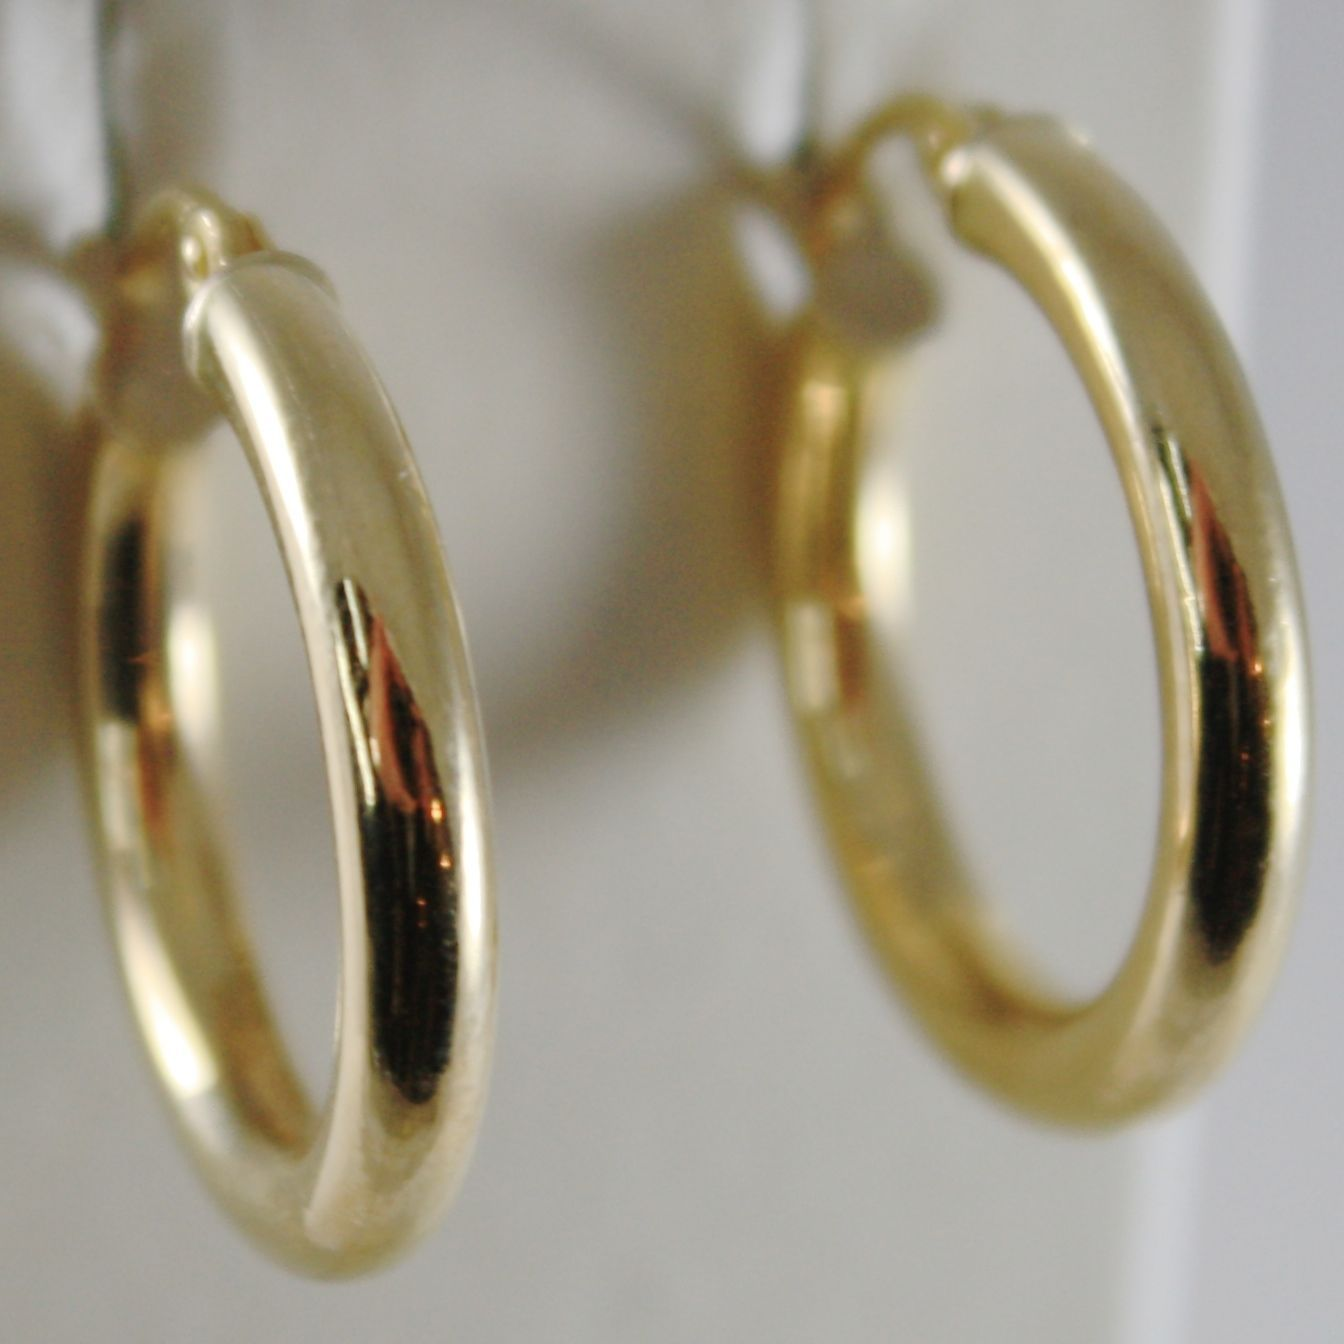 18K YELLOW GOLD EARRINGS CIRCLE HOOP 21 MM 0.83 INCHES DIAMETER MADE IN ITALY